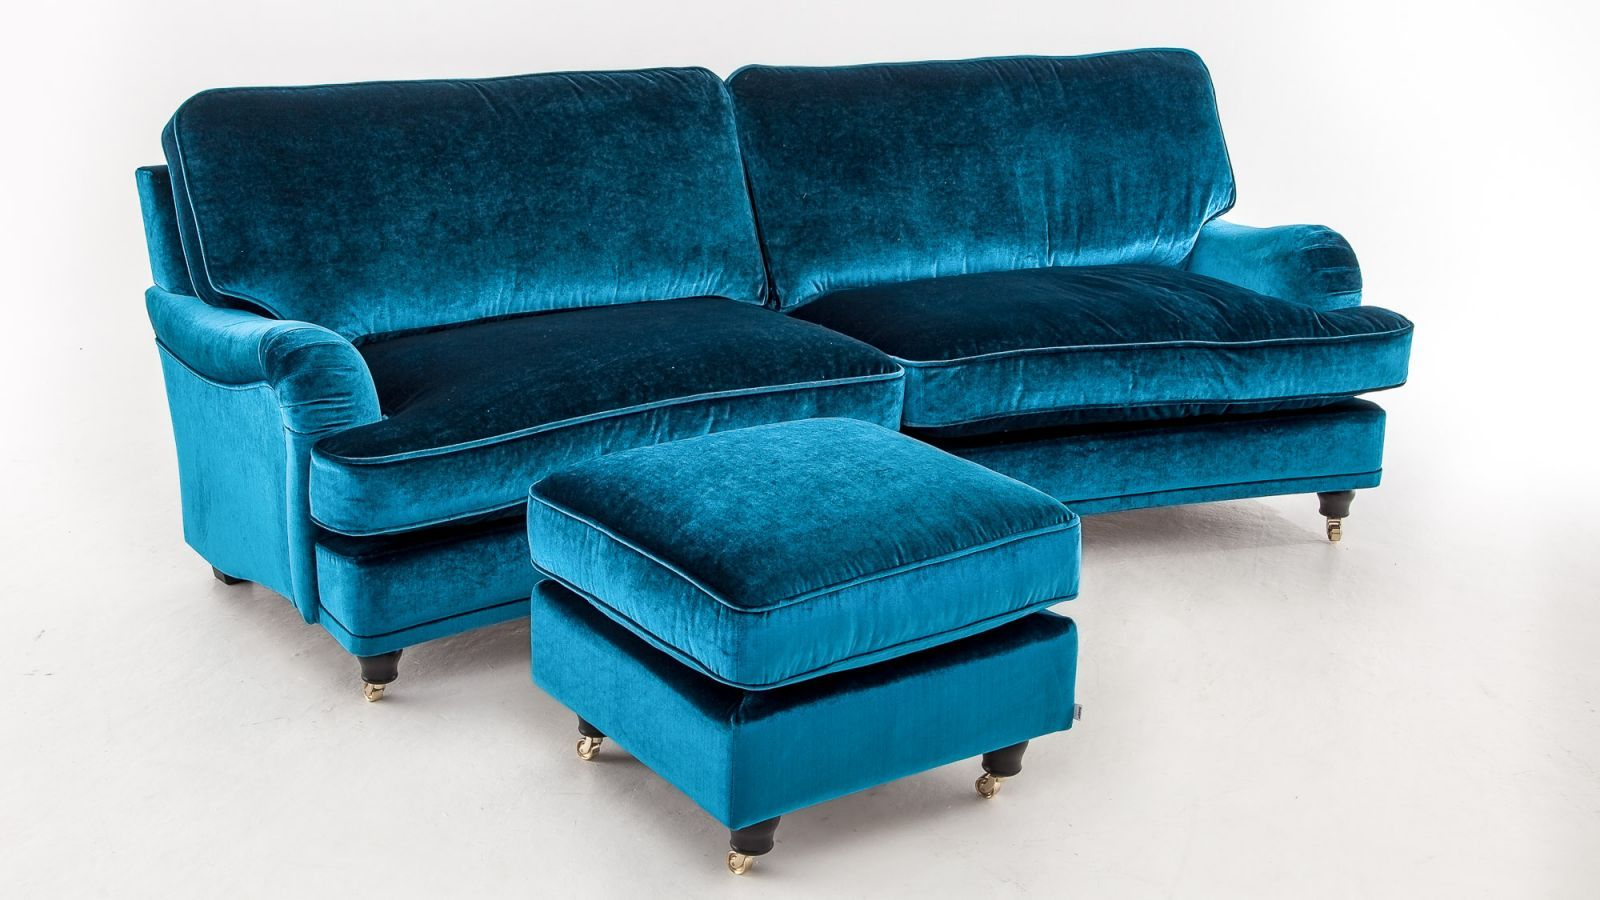 Ridiculously cool Howard sofa. Svängd Howardsoffa med dunstoppning ...